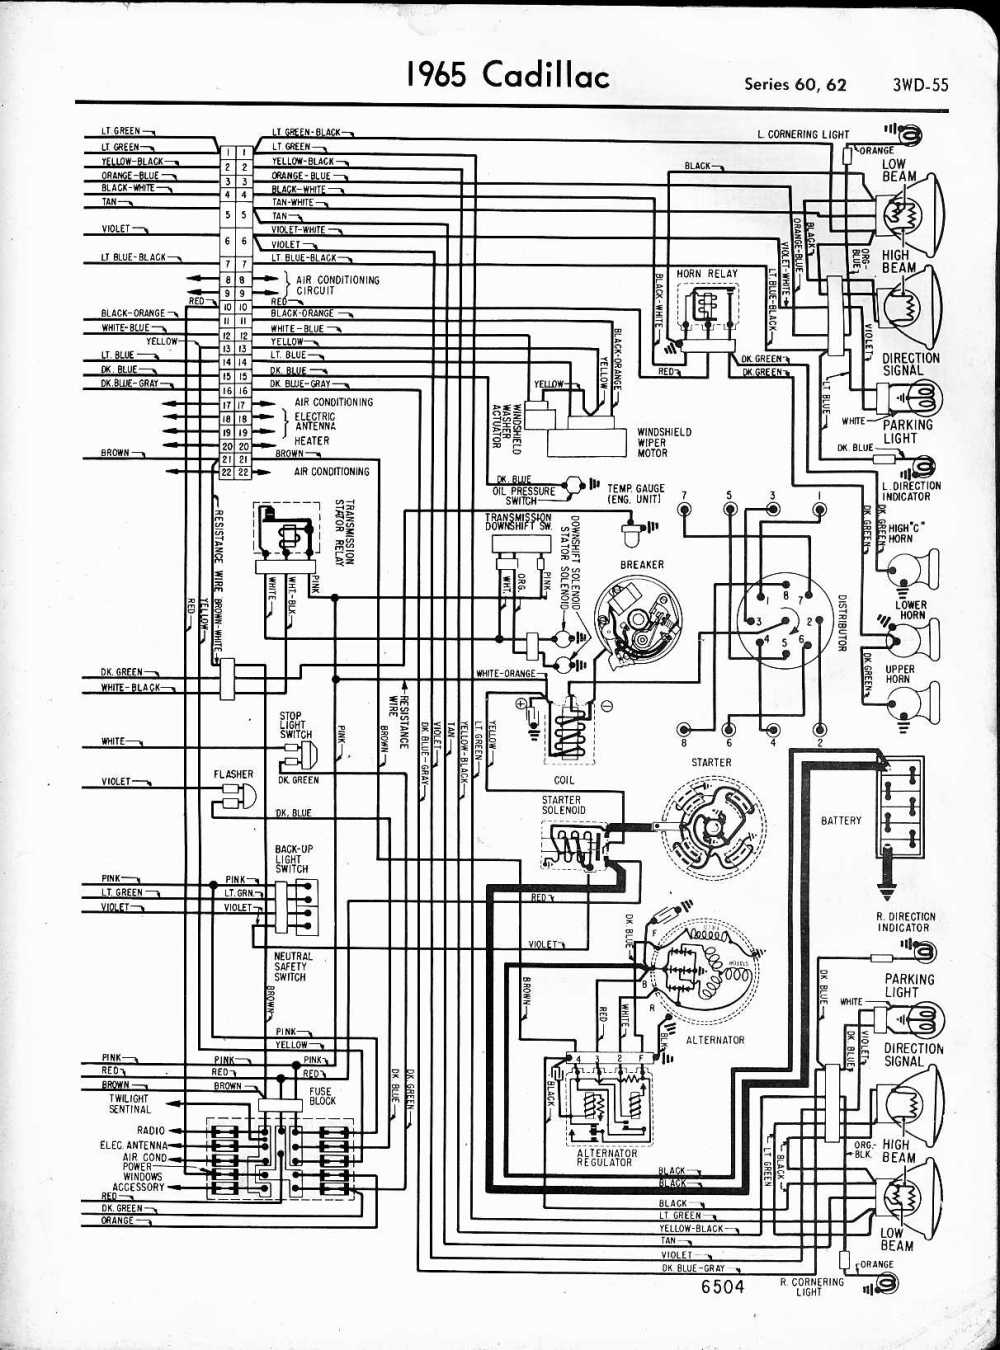 medium resolution of cadillac limousine wiring diagram wiring diagrams schema light wiring diagram cadillac limousine wiring diagram box wiring